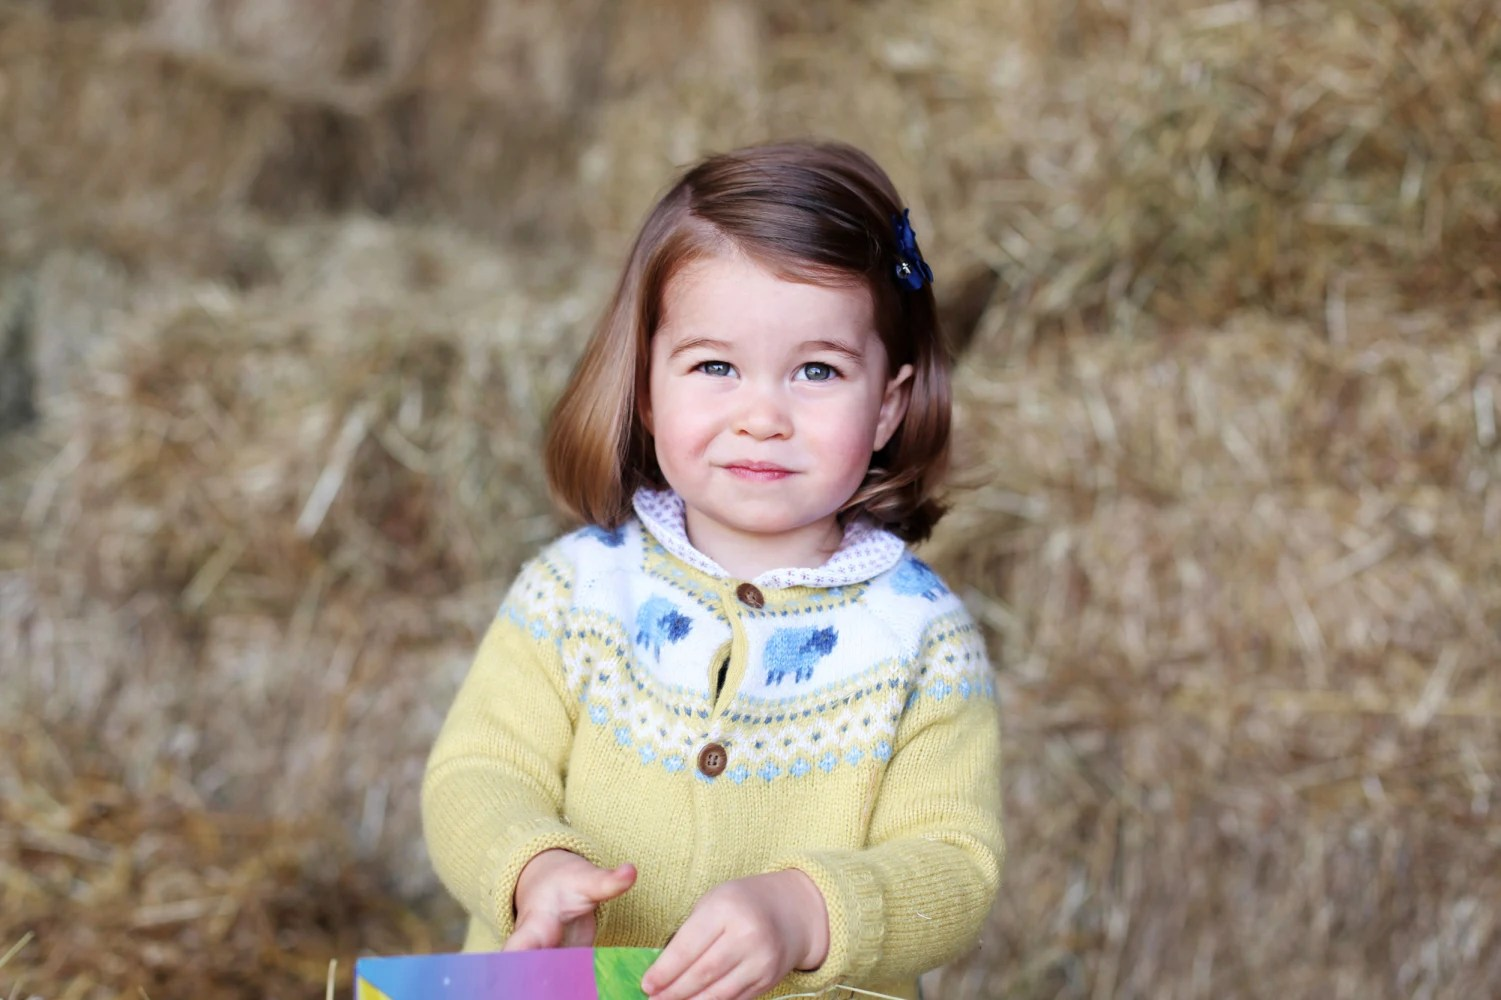 Adorable New Photo Of Princess Charlotte Proves She's Growing Up Quickly